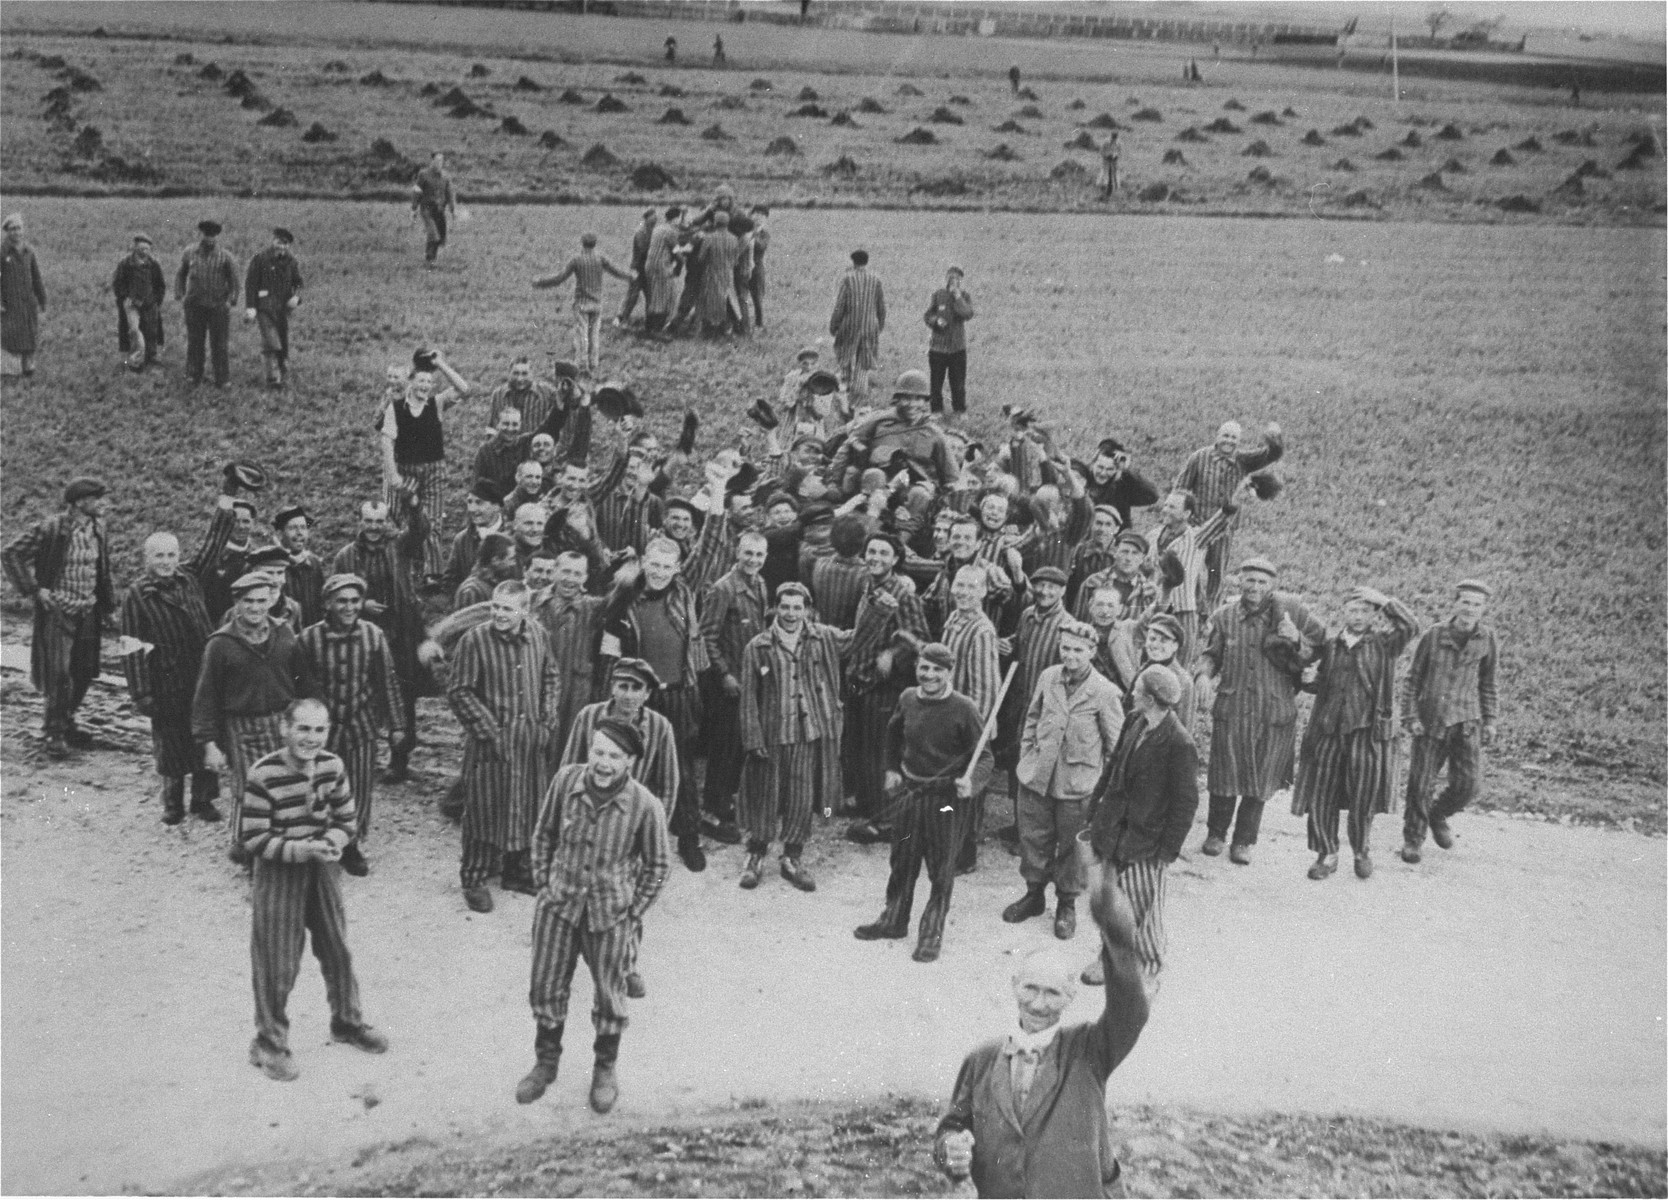 """Survivors in Dachau cheer the arrival of U.S. troops.  Original caption reads: """"Dachau Concentration Camp.  Horrors worse than those found in the German concentration camps of Buchenwald and Belsen were discovered in the stinking hell-hole of Dachau, captured by troops of the 42nd and 45th Infantry Divisions of the Seventh U.S. Army April 30, 1945.  More than 32,000 prisoners were liberated, among them some Englishmen, Canadians and Americans.  The camp was formally surrendered by an SS lieutenant carrying a white flag, accompanied by a Swiss Red Cross official, but SS troops opened fire as American troops approached the main entrance.  The Germans were shot down.  Three prisoners were electrocuted when they tried to burst through the electrified wire barrier to welcome the Americans.  SS guards opened fire on other prisoners who went wild with joy and rushed to meet the liberating troops.  Prisoners with access to records said 9,000 people died of hunger, disease or shooting within the past three months at Dachau.  Four thousand more perished during cold Winter months.  When Americans entered the camp, they found 50 open railway cars standing on a siding, apparently full of dirty clothing but actually found to contain hundreds of corpses piled on top of each other.  They also found a row of kennels where fierce dogs were kept to set after escaping men.  They discovered gas extermination chambers, incinerators full of naked bodies, bodies marked for dissection and the bodies of several small children.    This photo shows: Prisoners of many nationalities show their happiness at being liberated by the Americans by tossing Lieutenant Leonard Zankel of Pittsbugh, Pennsylvania, in the air.  U.S. Signal Corps Photo."""""""